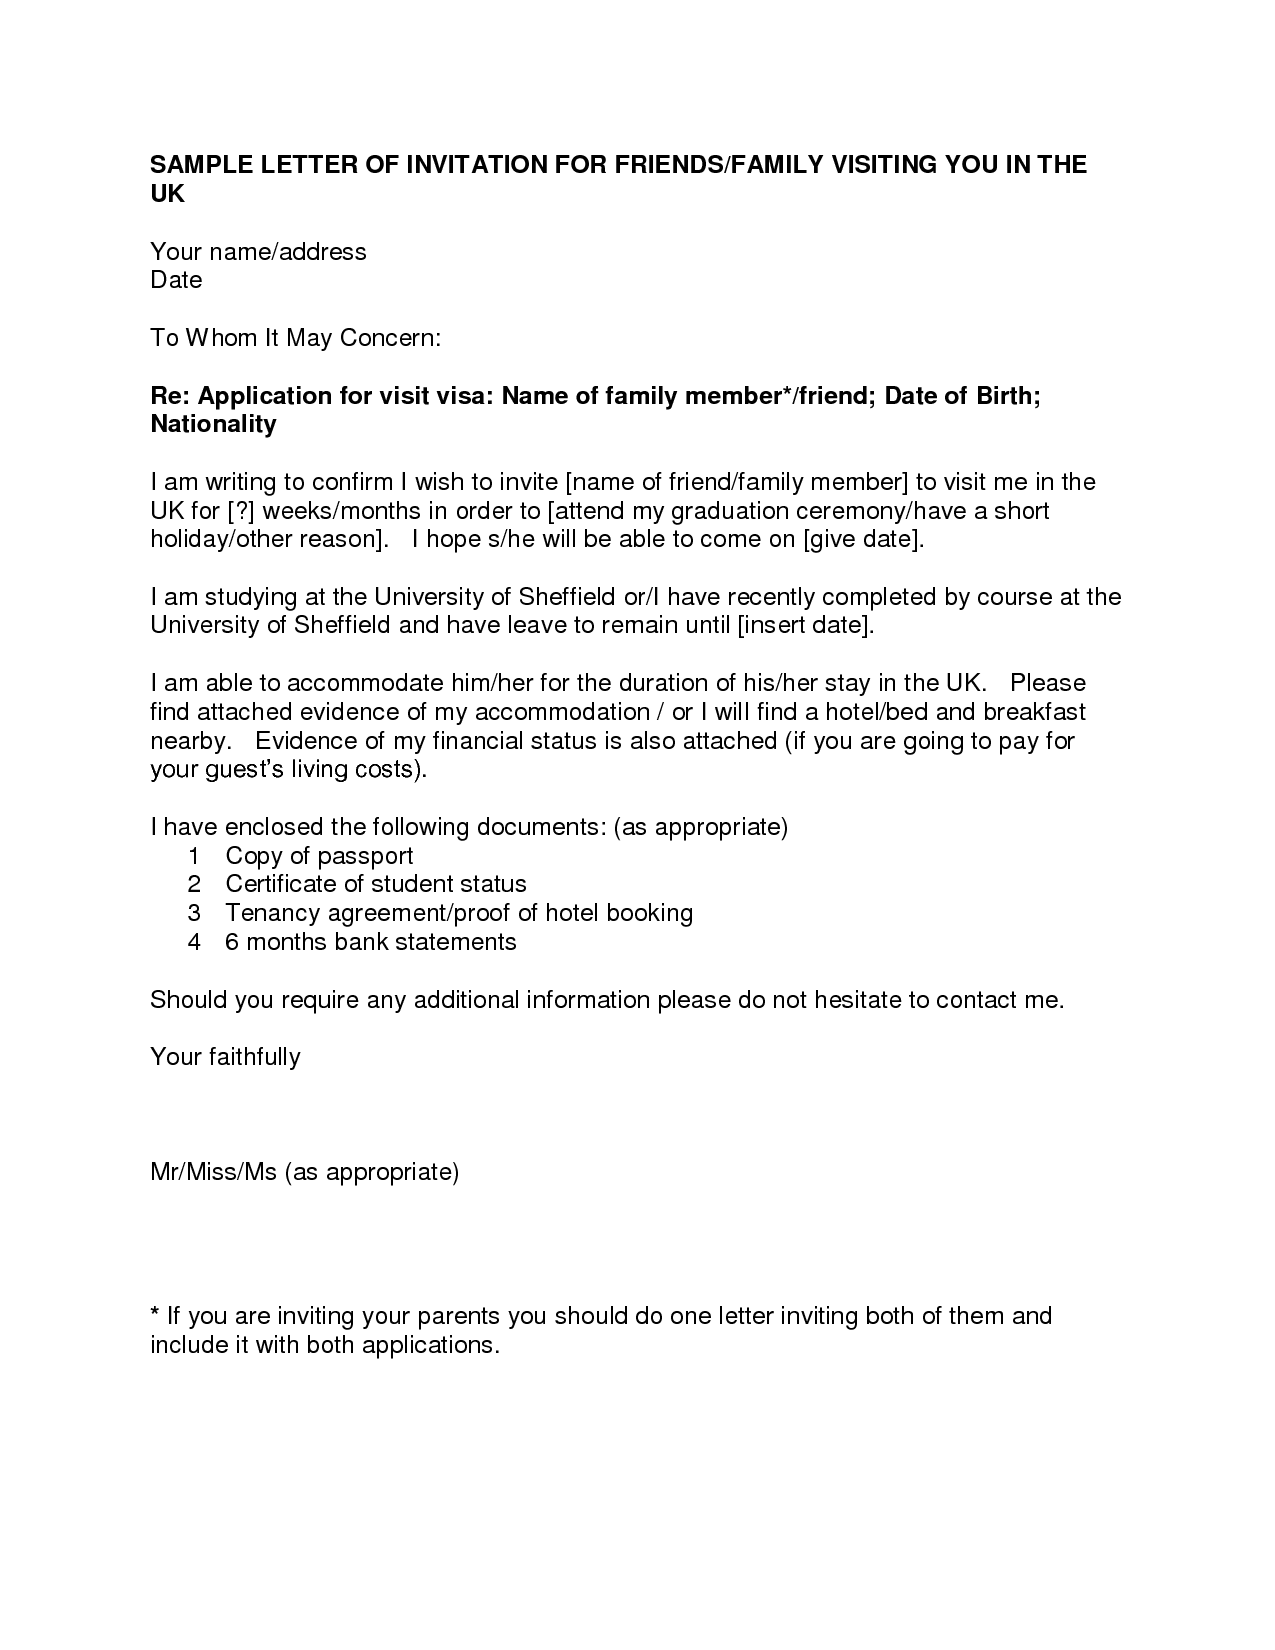 Sample letter of invitation for business visa to uk letter of invitation for uk visa templatevisa to a altavistaventures